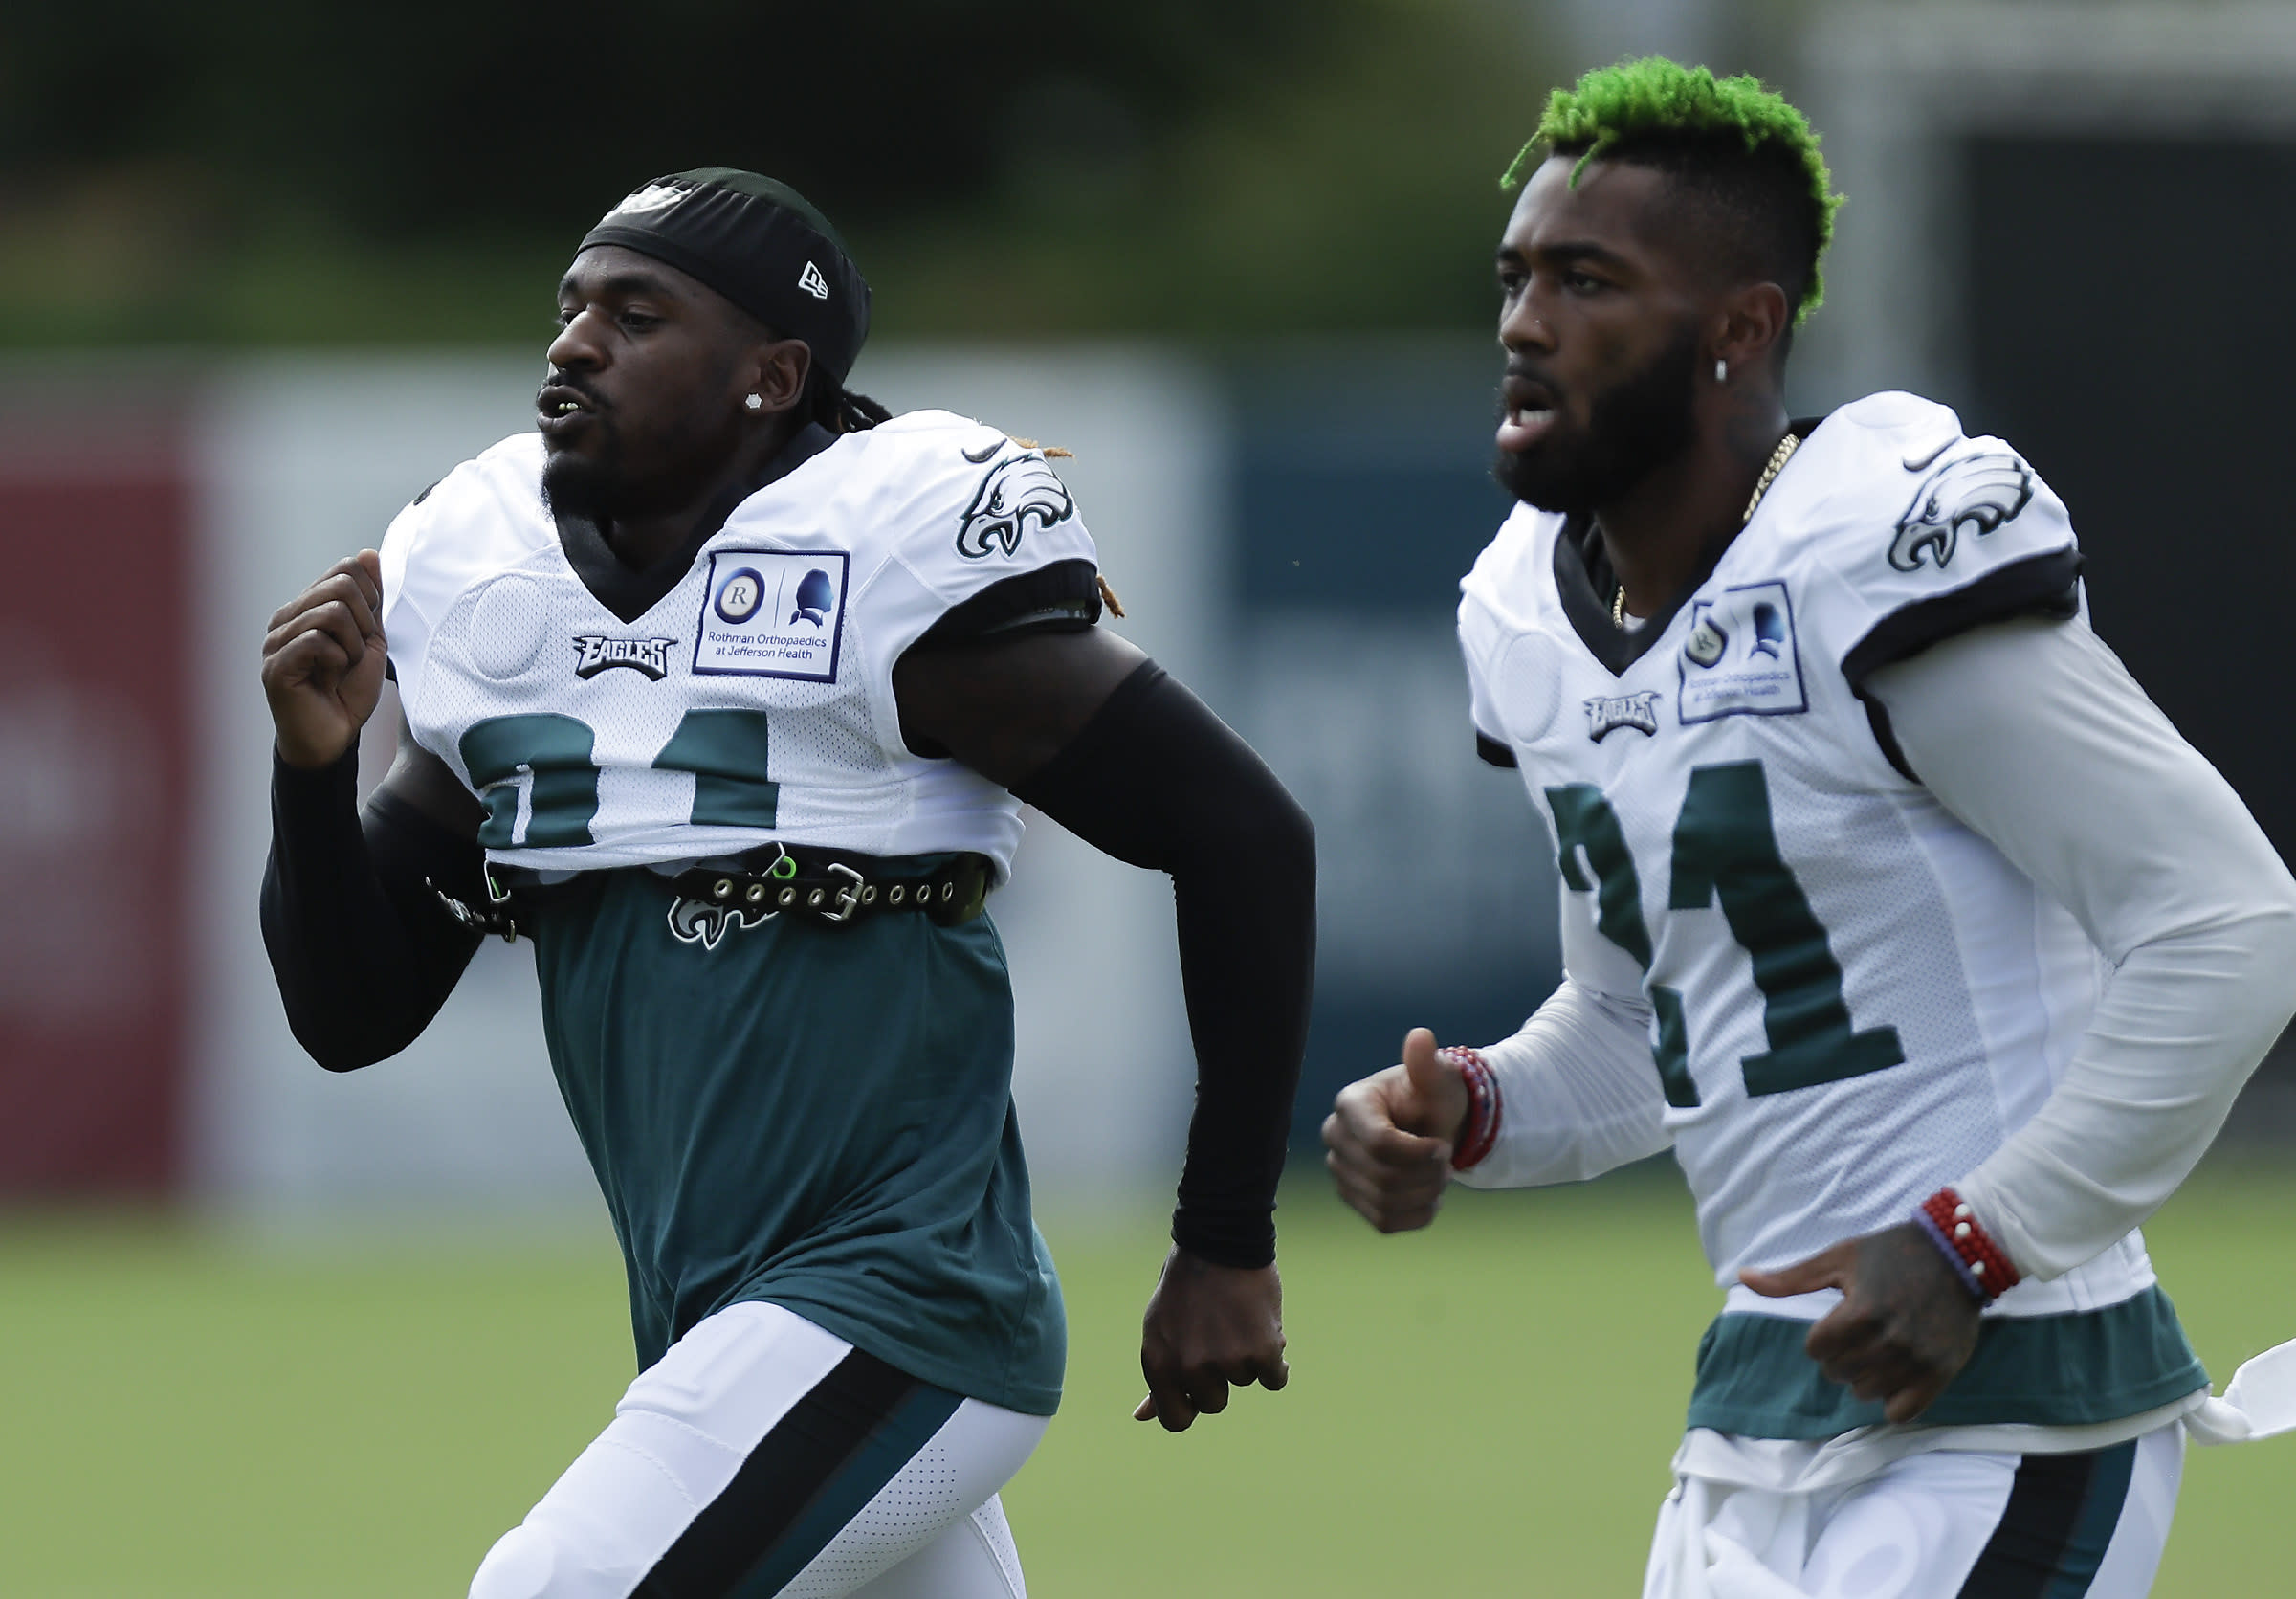 Philadelphia Eagles cornerback Nickell Robey-Coleman, left, runs with teammate safety Jalen Mills during an NFL football training camp practice in Philadelphia, Monday, Aug. 24, 2020. (Yong Kim/Pool Photo via AP)